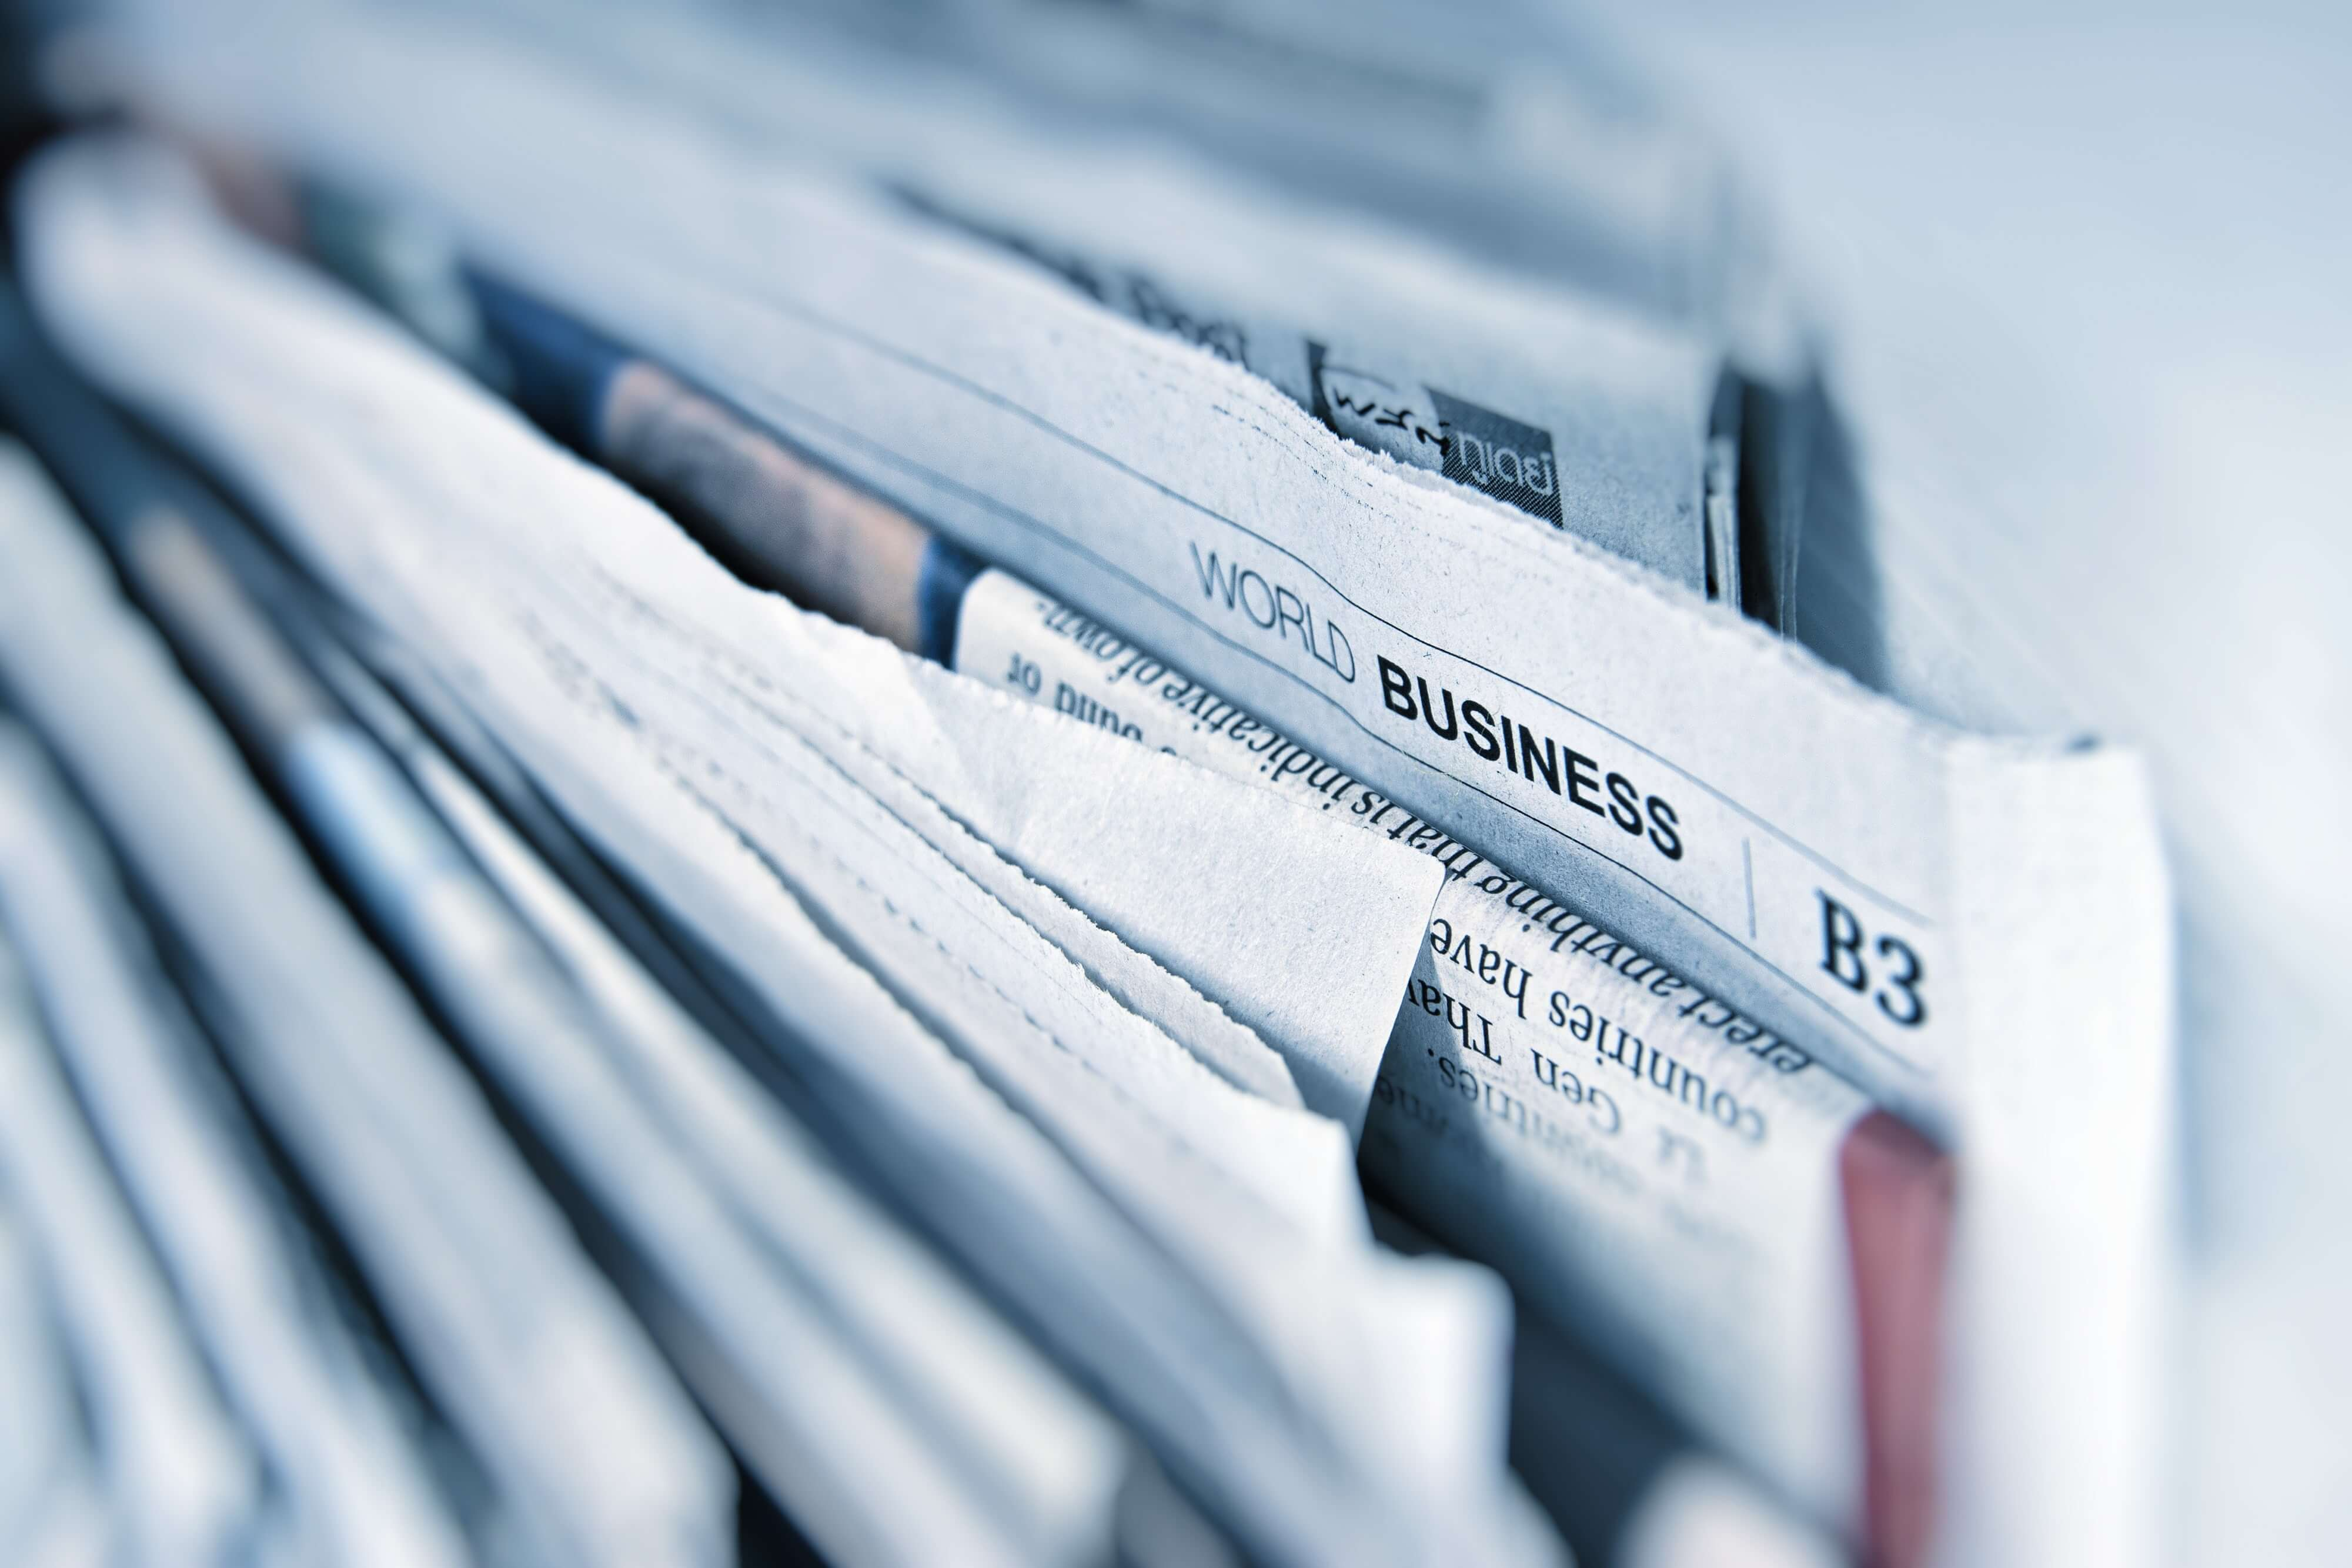 A Hedge Fund's 'Mercenary' Strategy: Buy Newspapers, Sell the Buildings